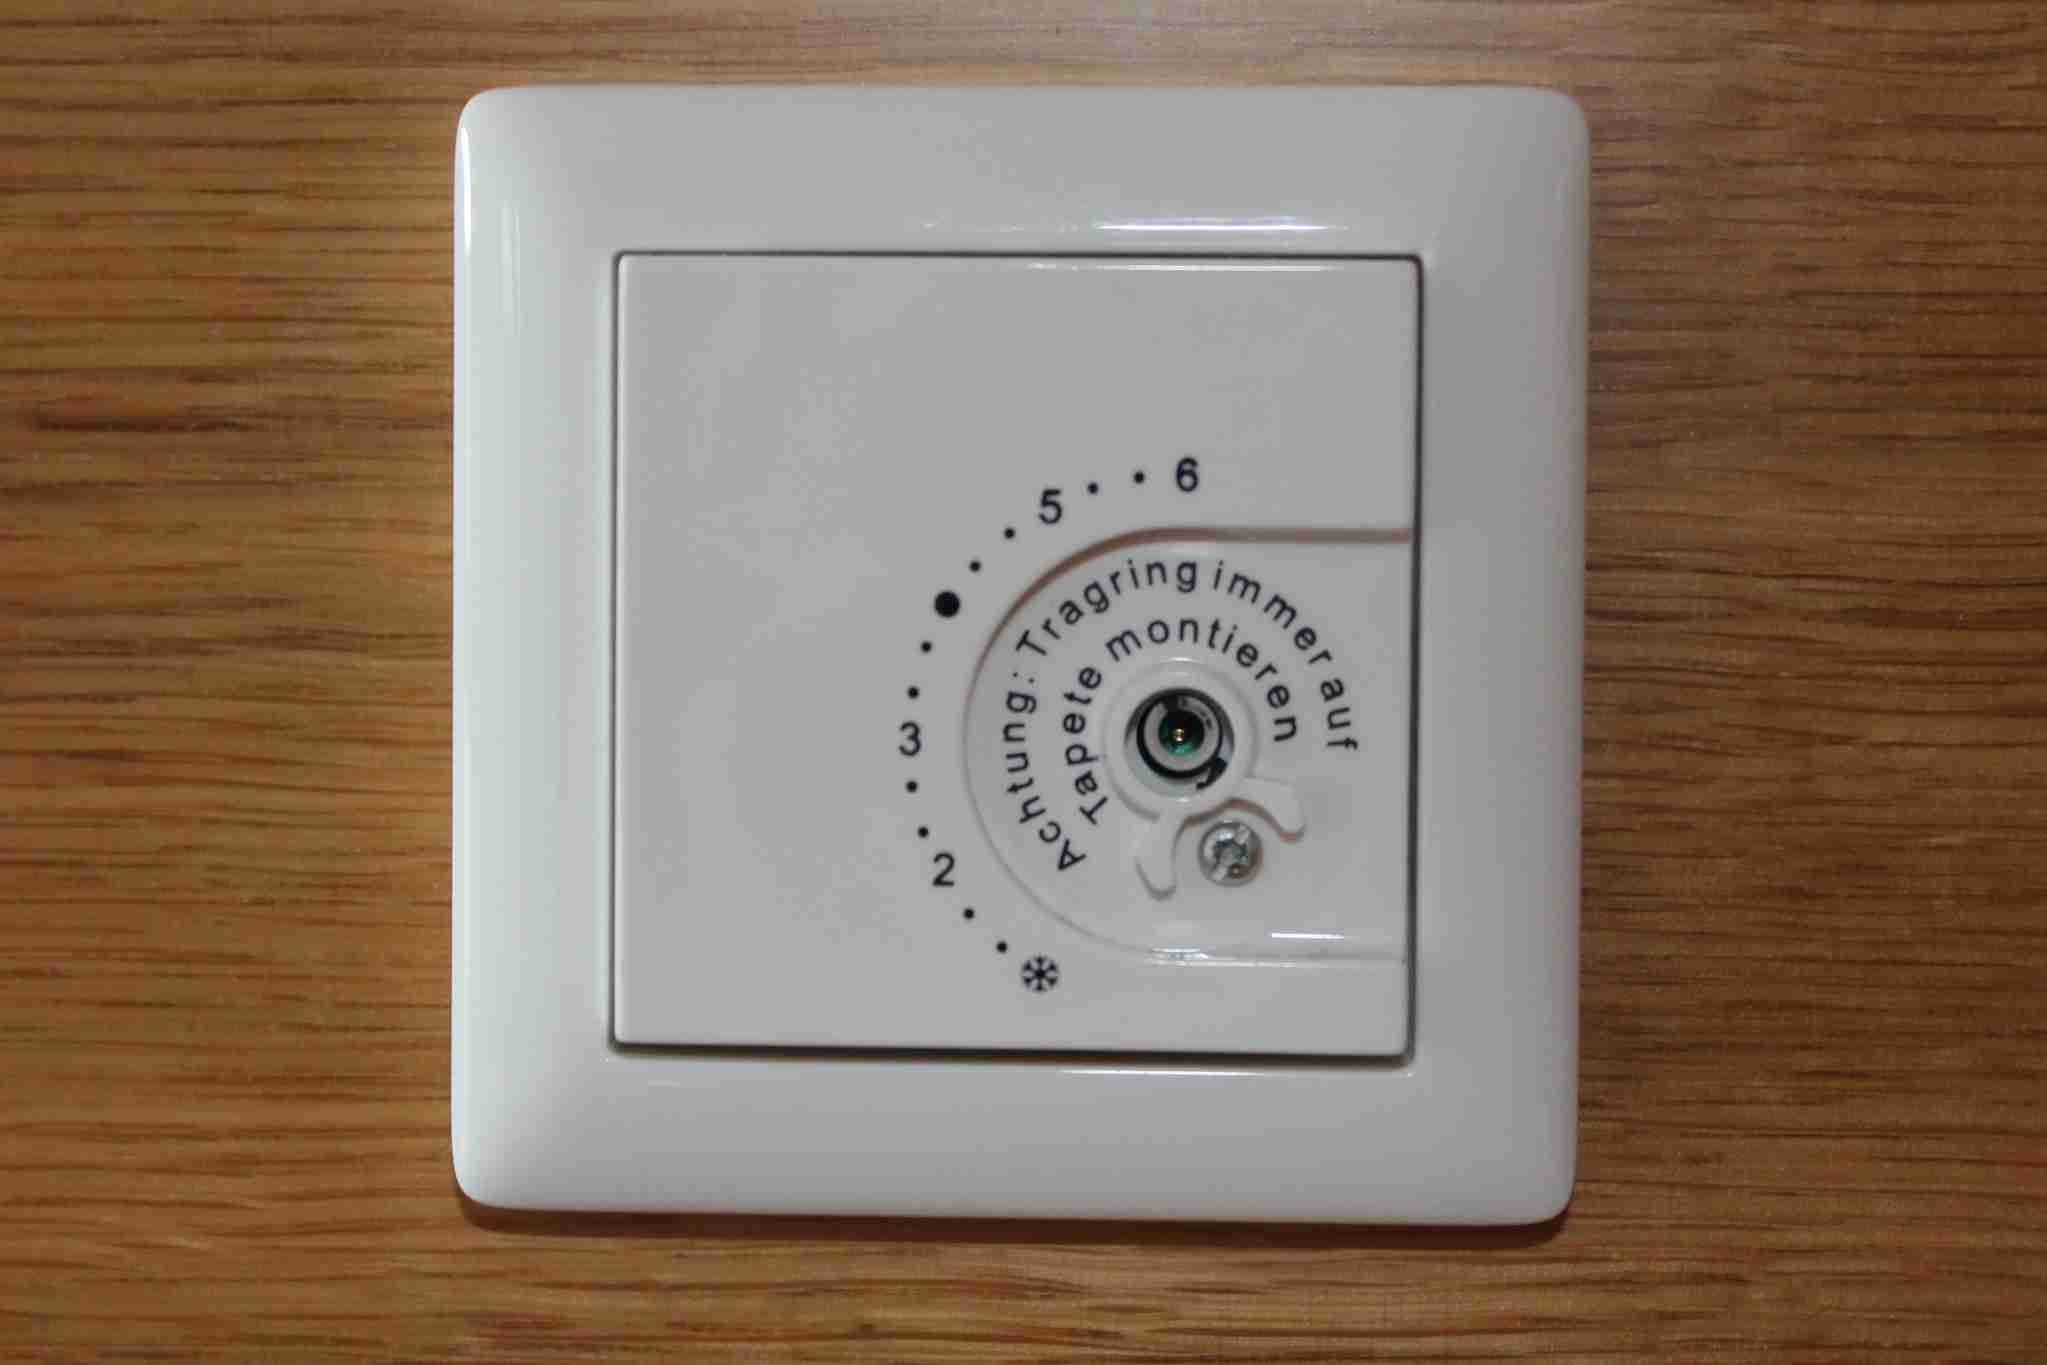 The dial to adjust room temperature was broken and could not be used.